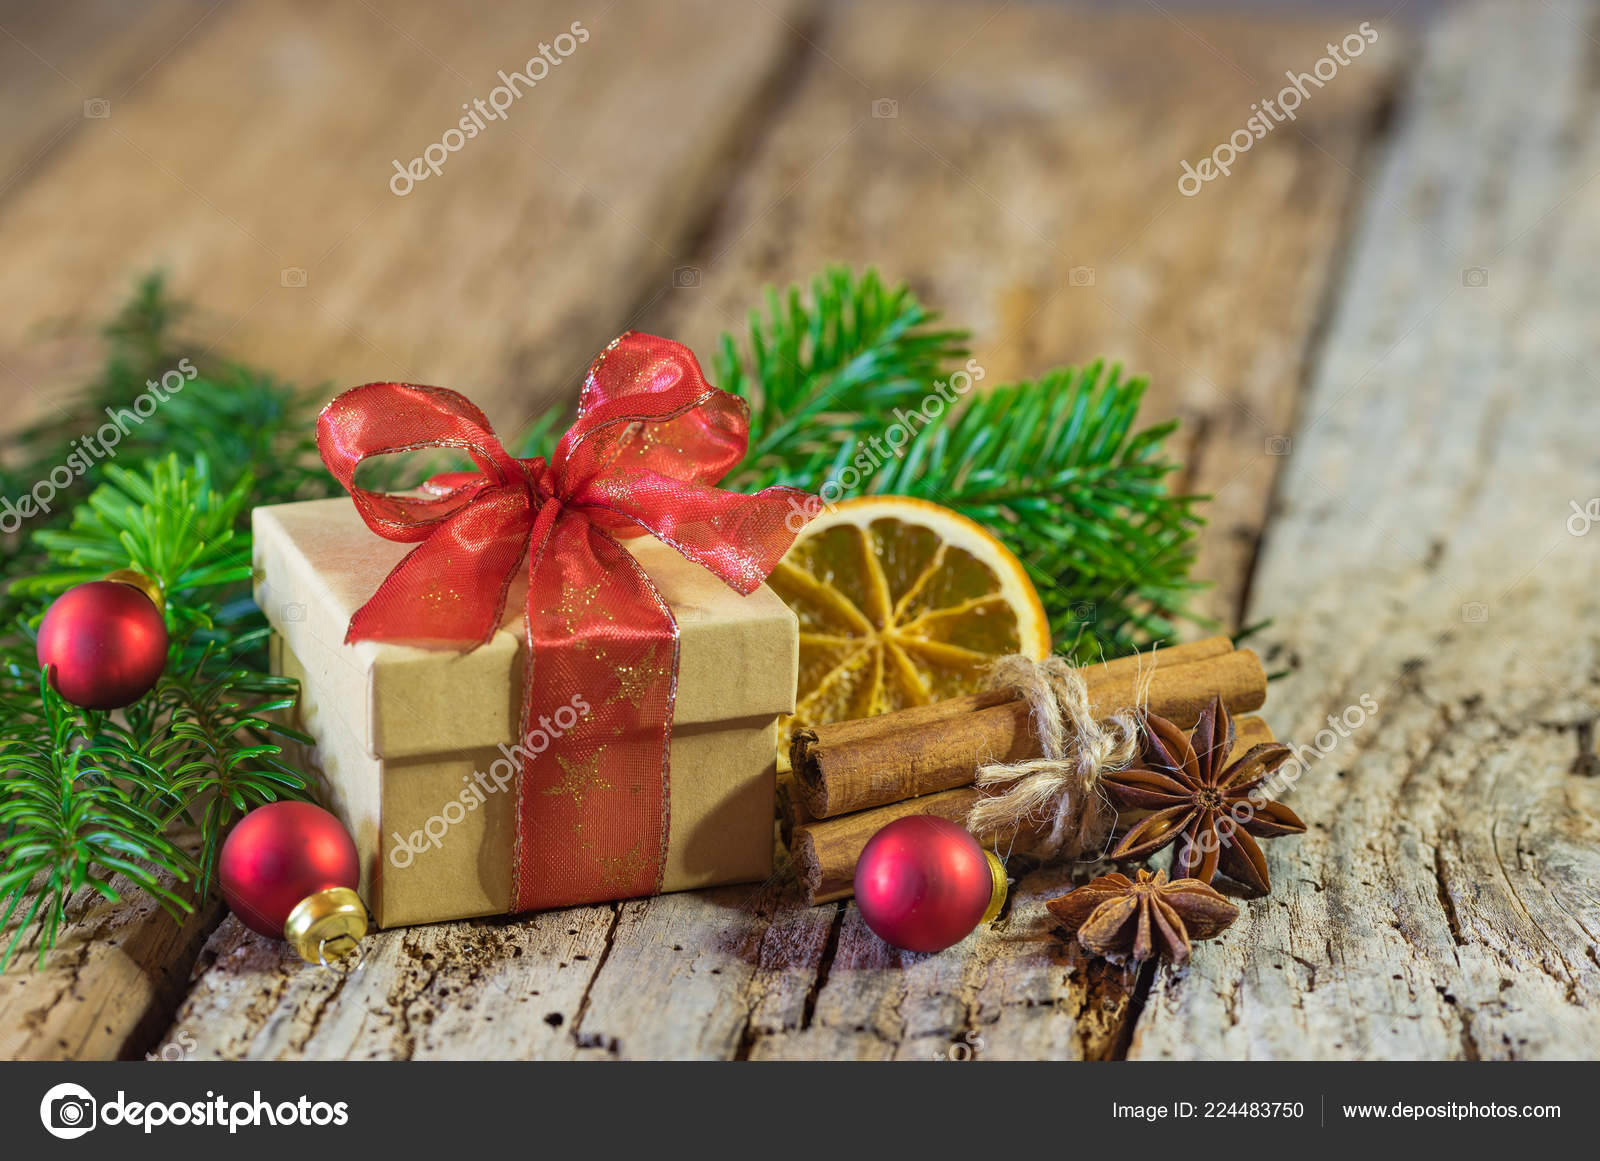 christmas present red ribbon natural decorations wood background stock photo - Christmas Present Decoration